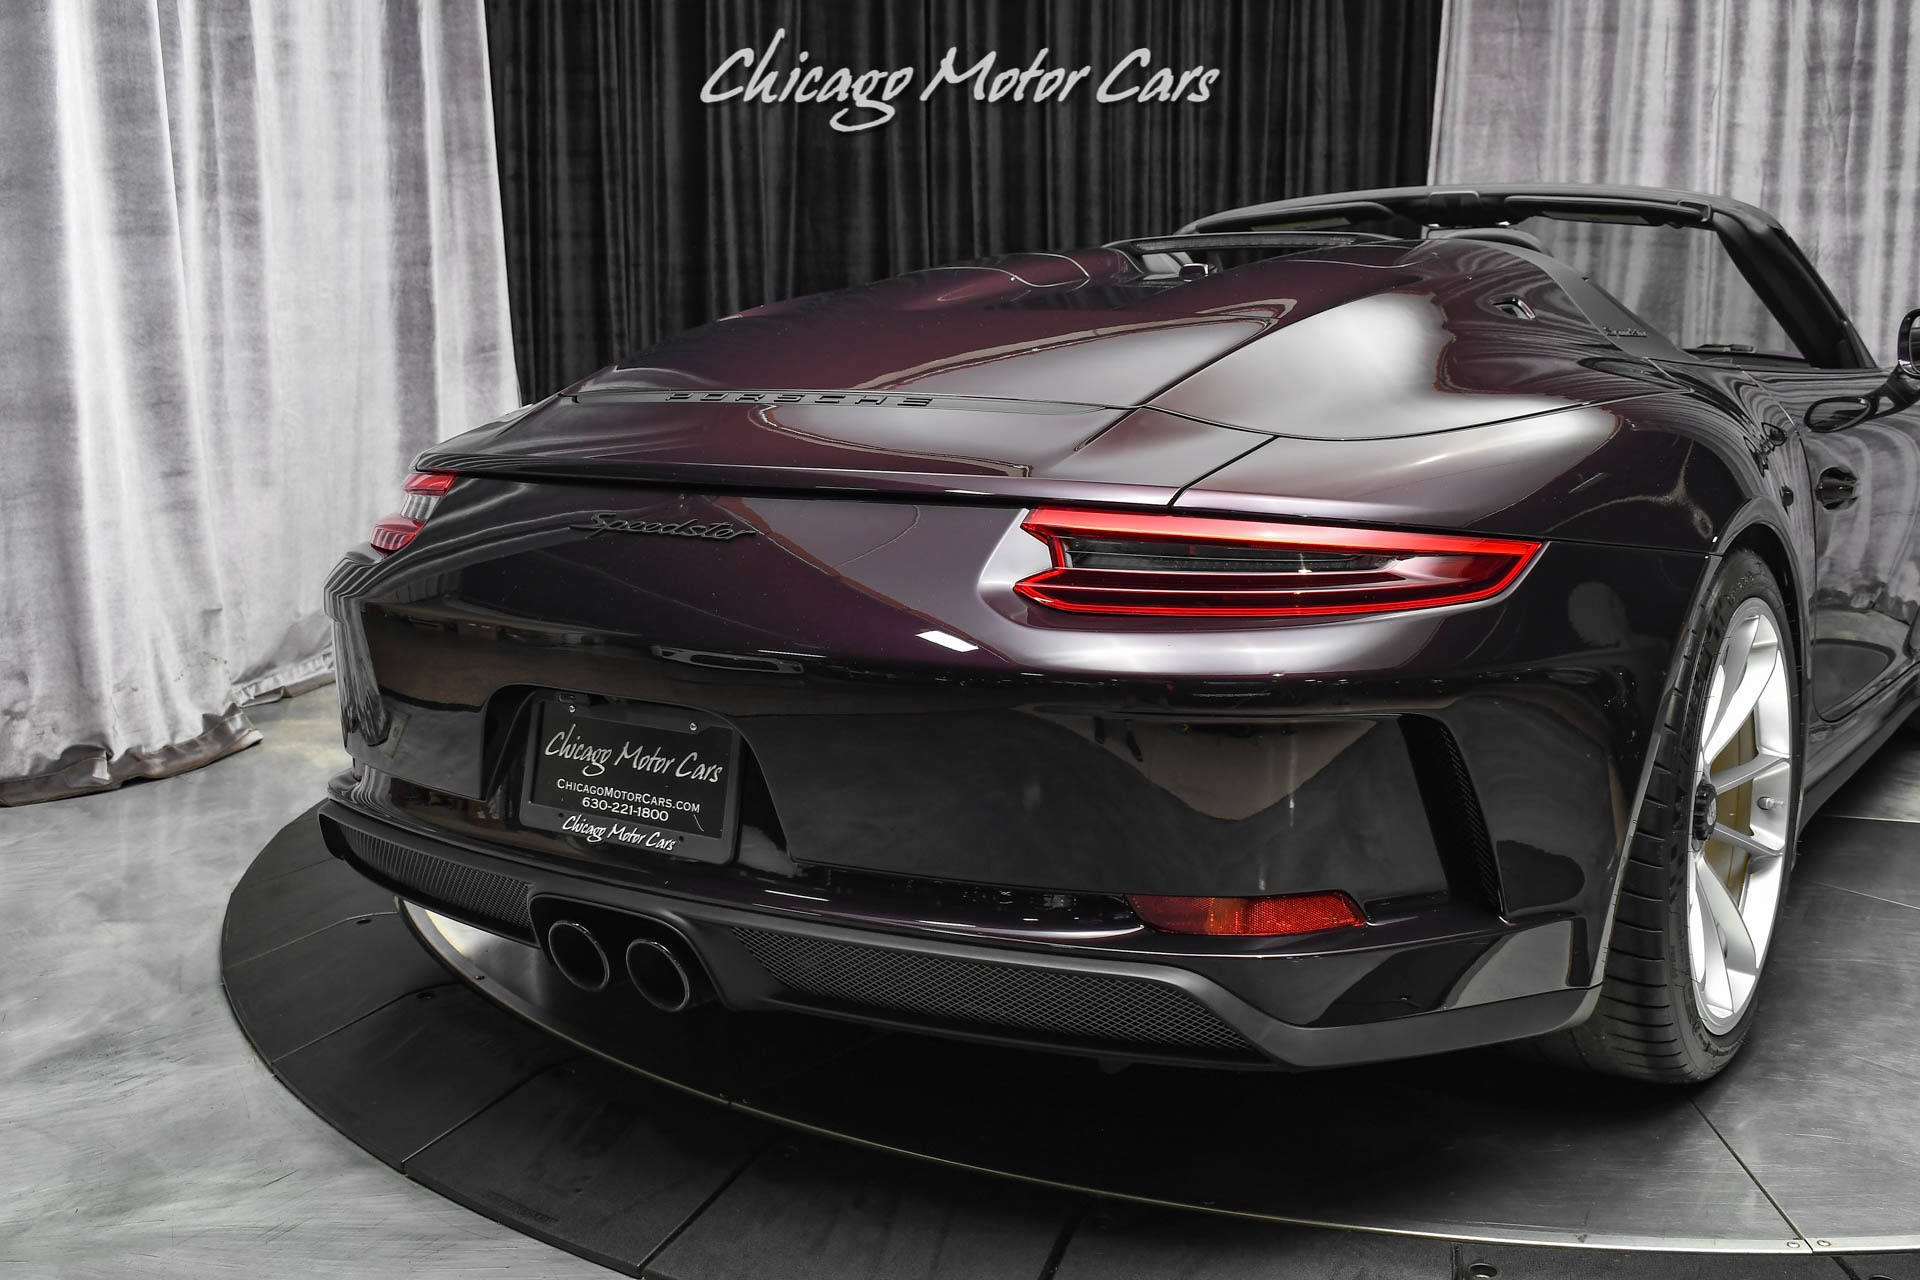 Used-2019-Porsche-911-Speedster-RARE-PTS-AMETHYST-METALLIC-Front-Axle-Lift-Limited-Production